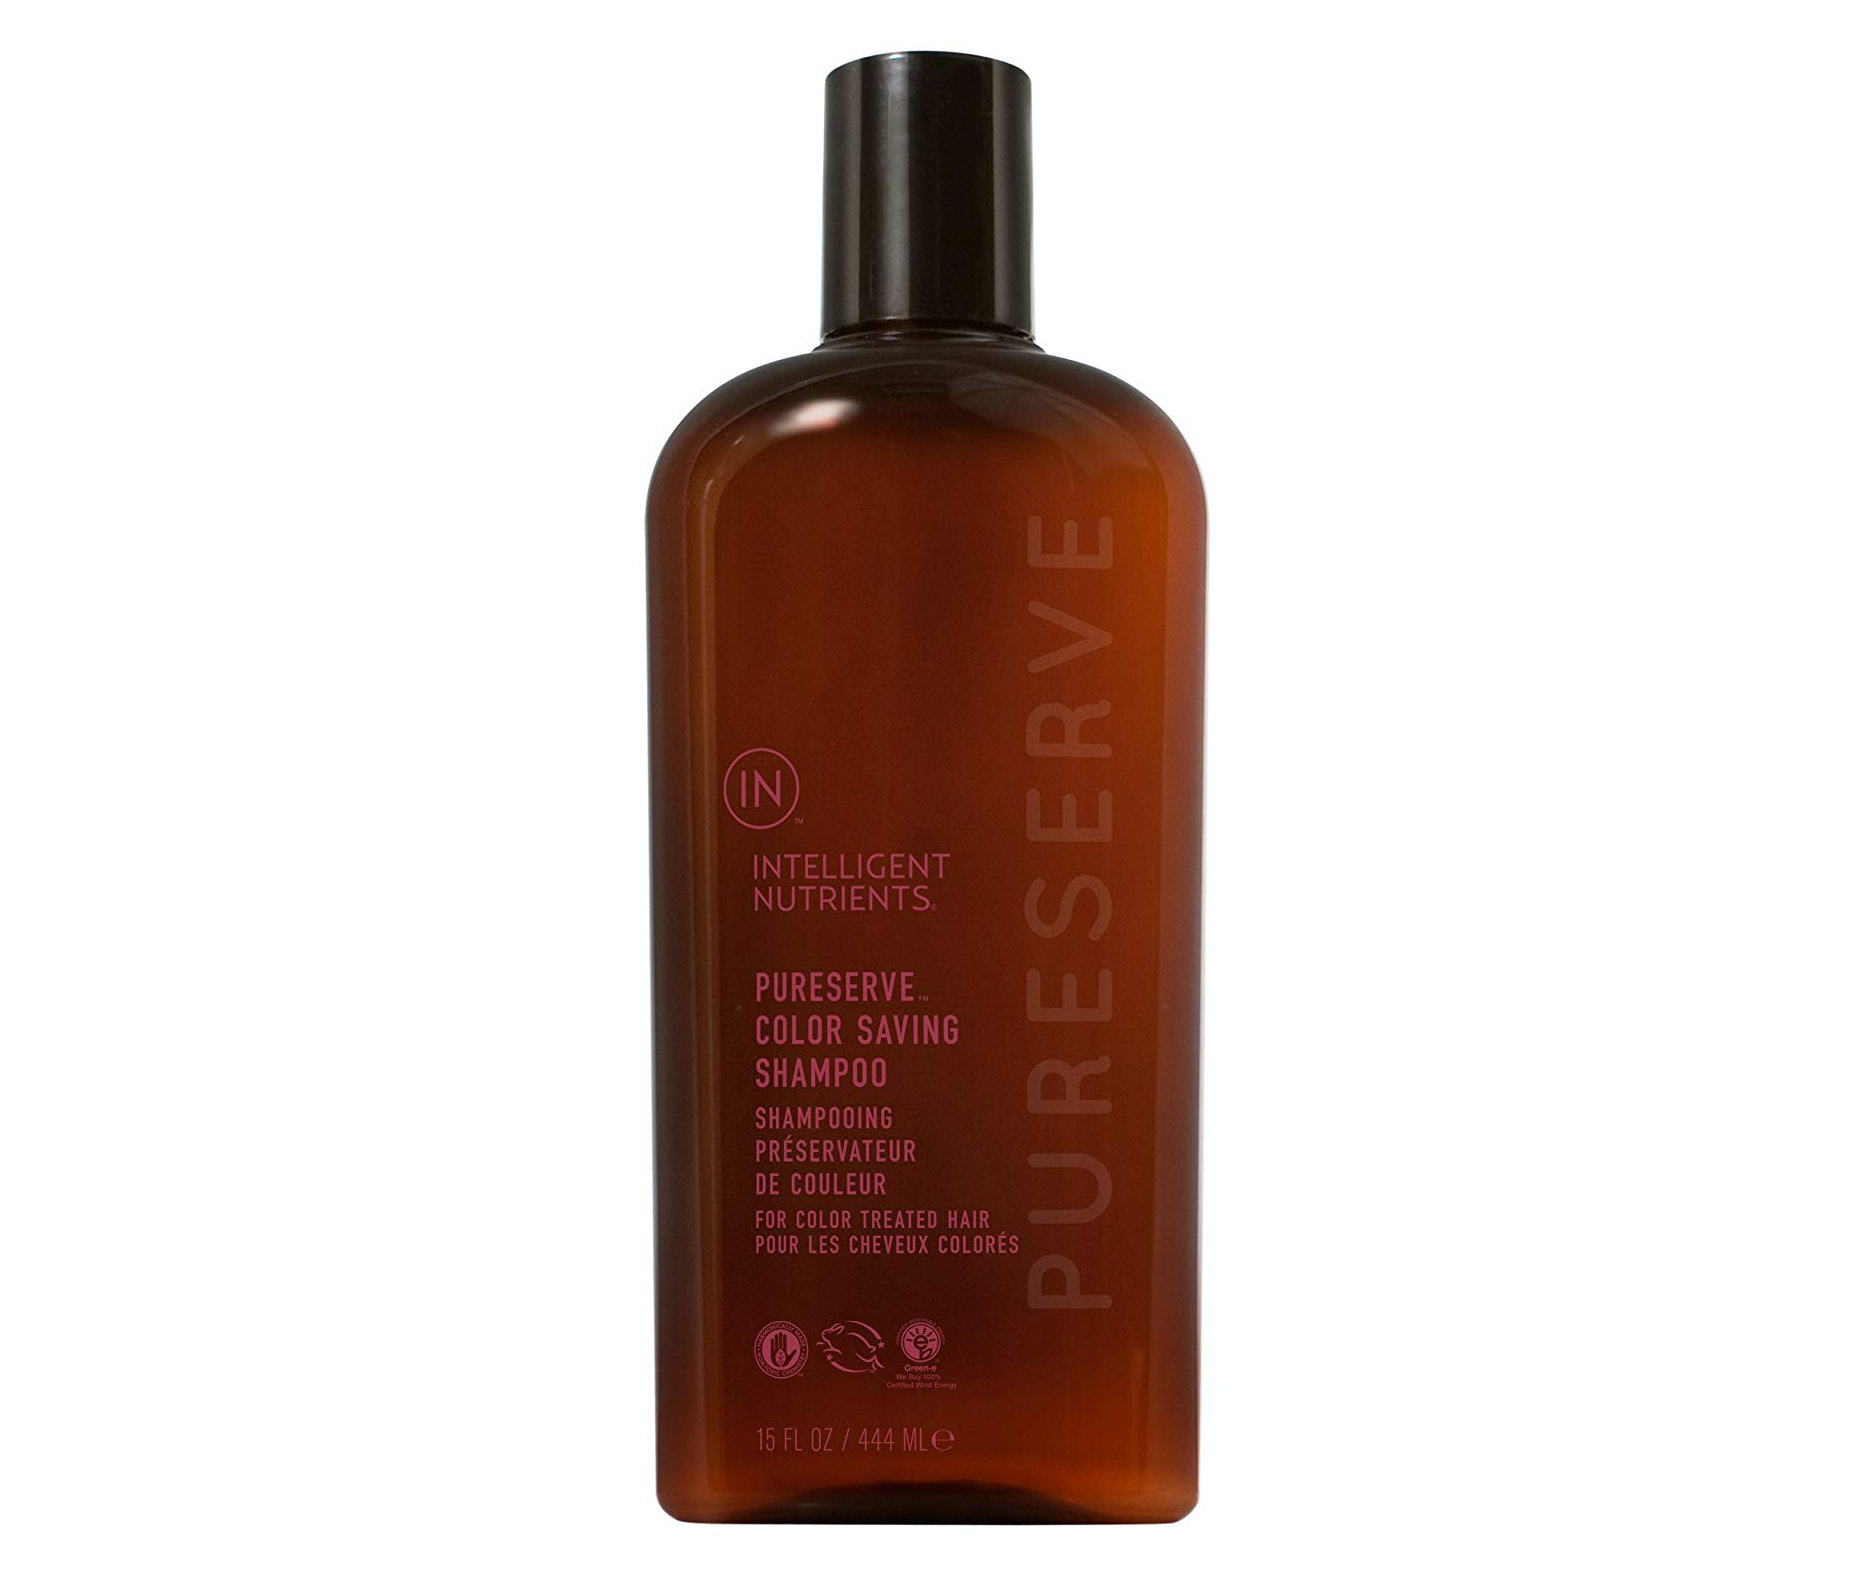 The 7 Best Sulfate-Free Shampoos & Conditioners